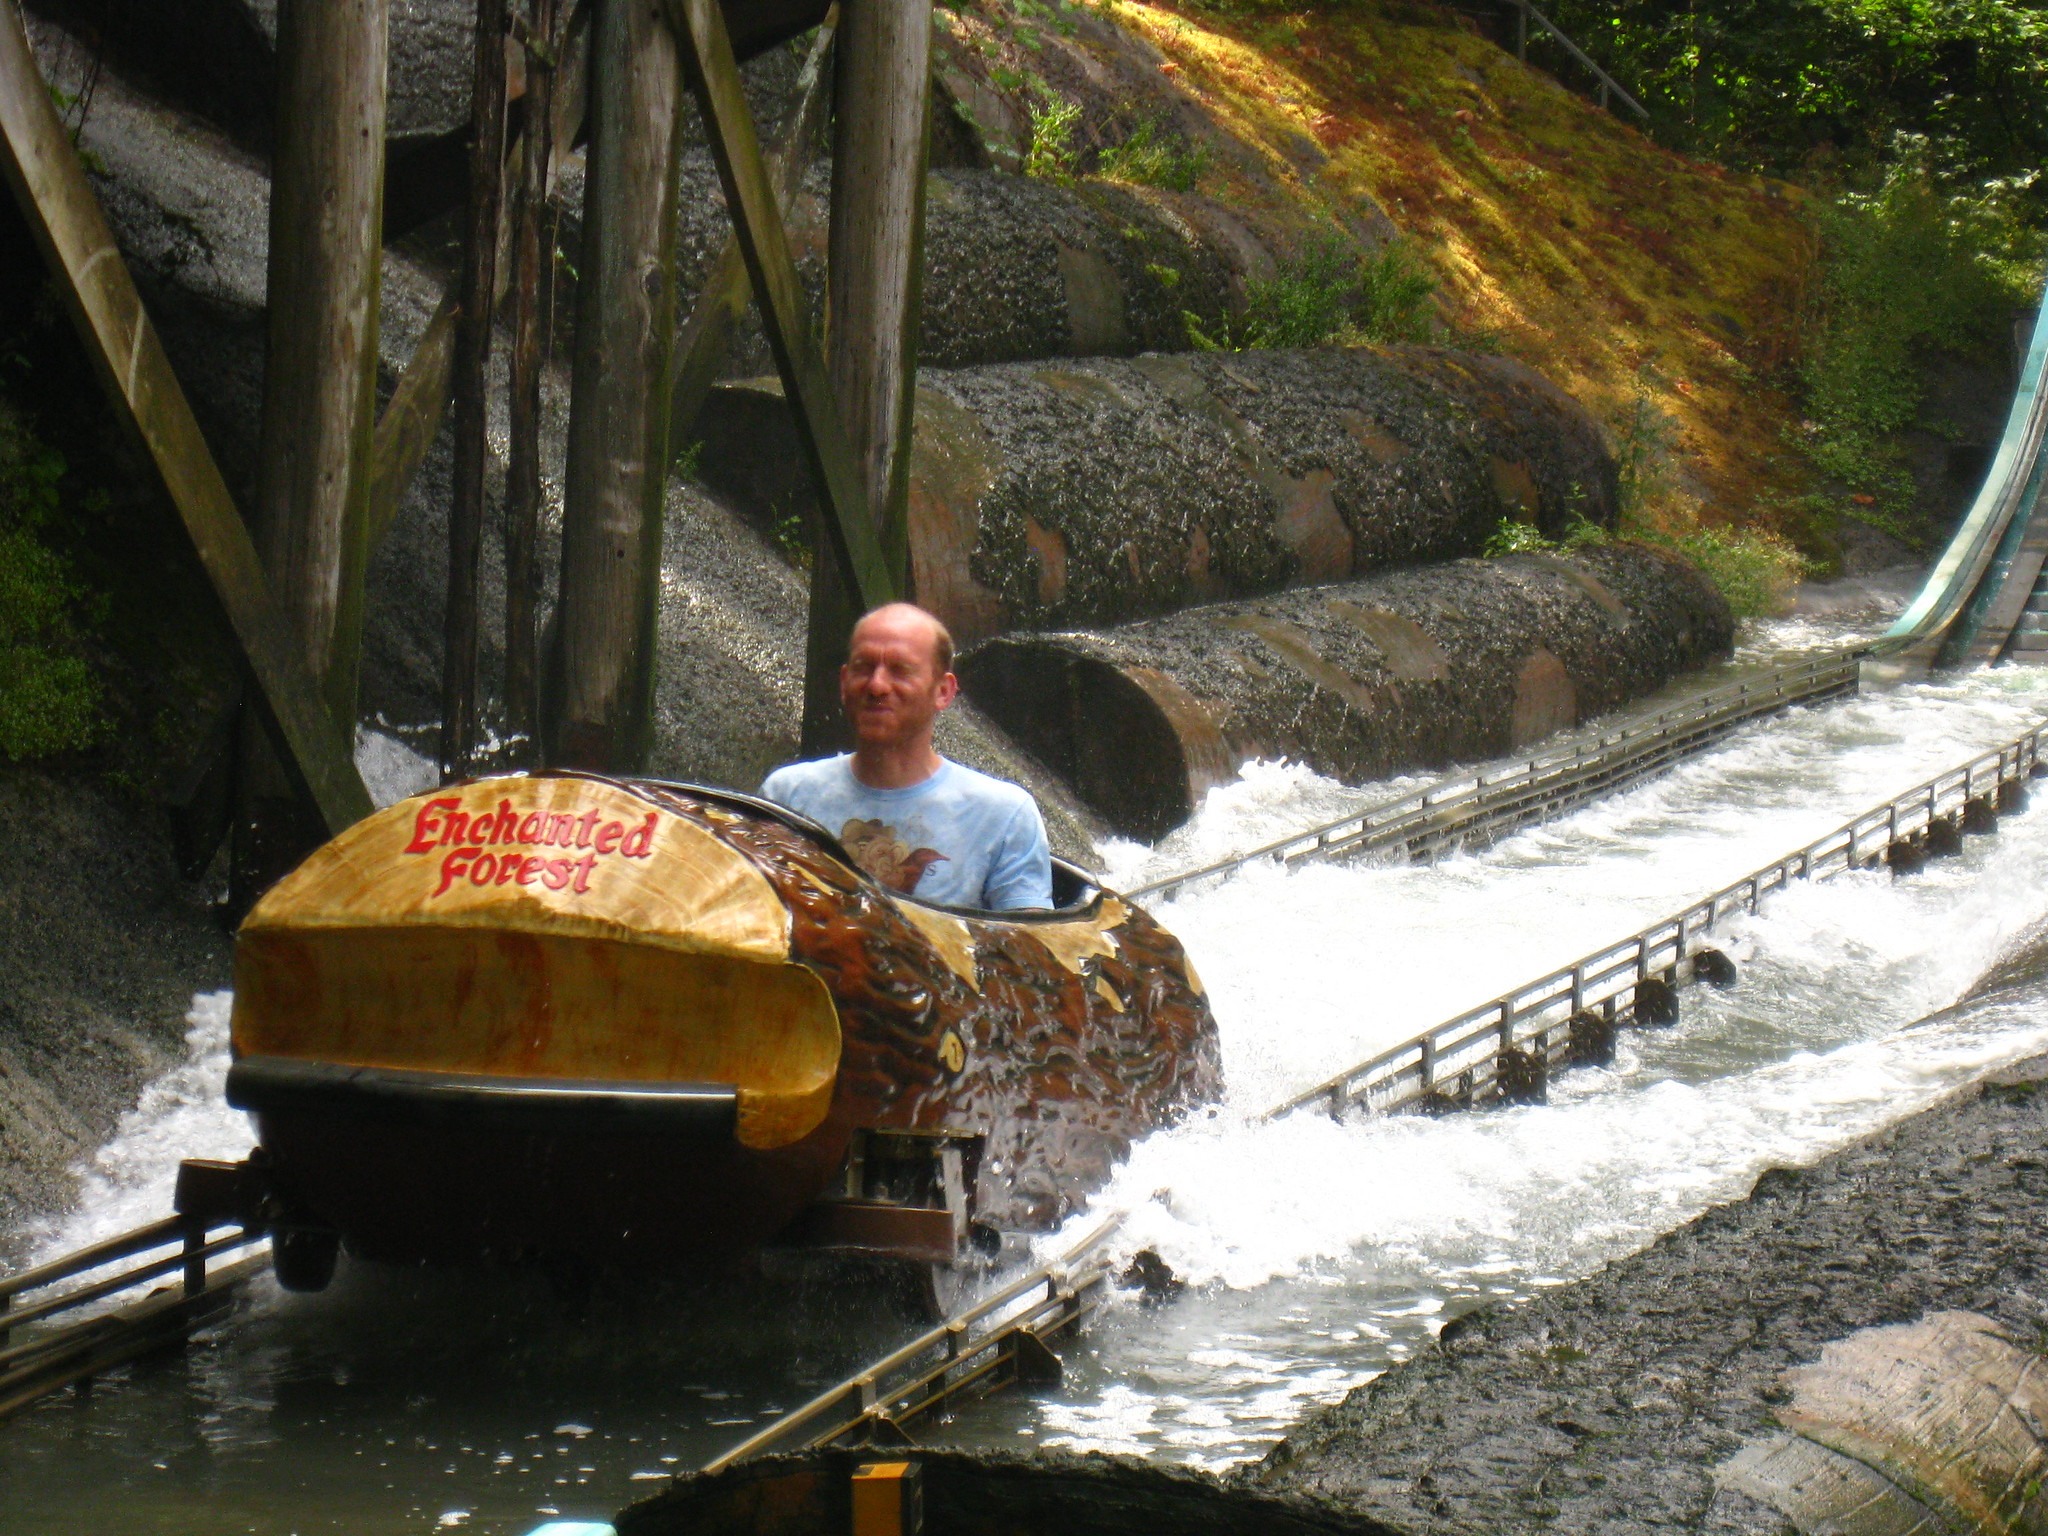 A person riding the log ride.